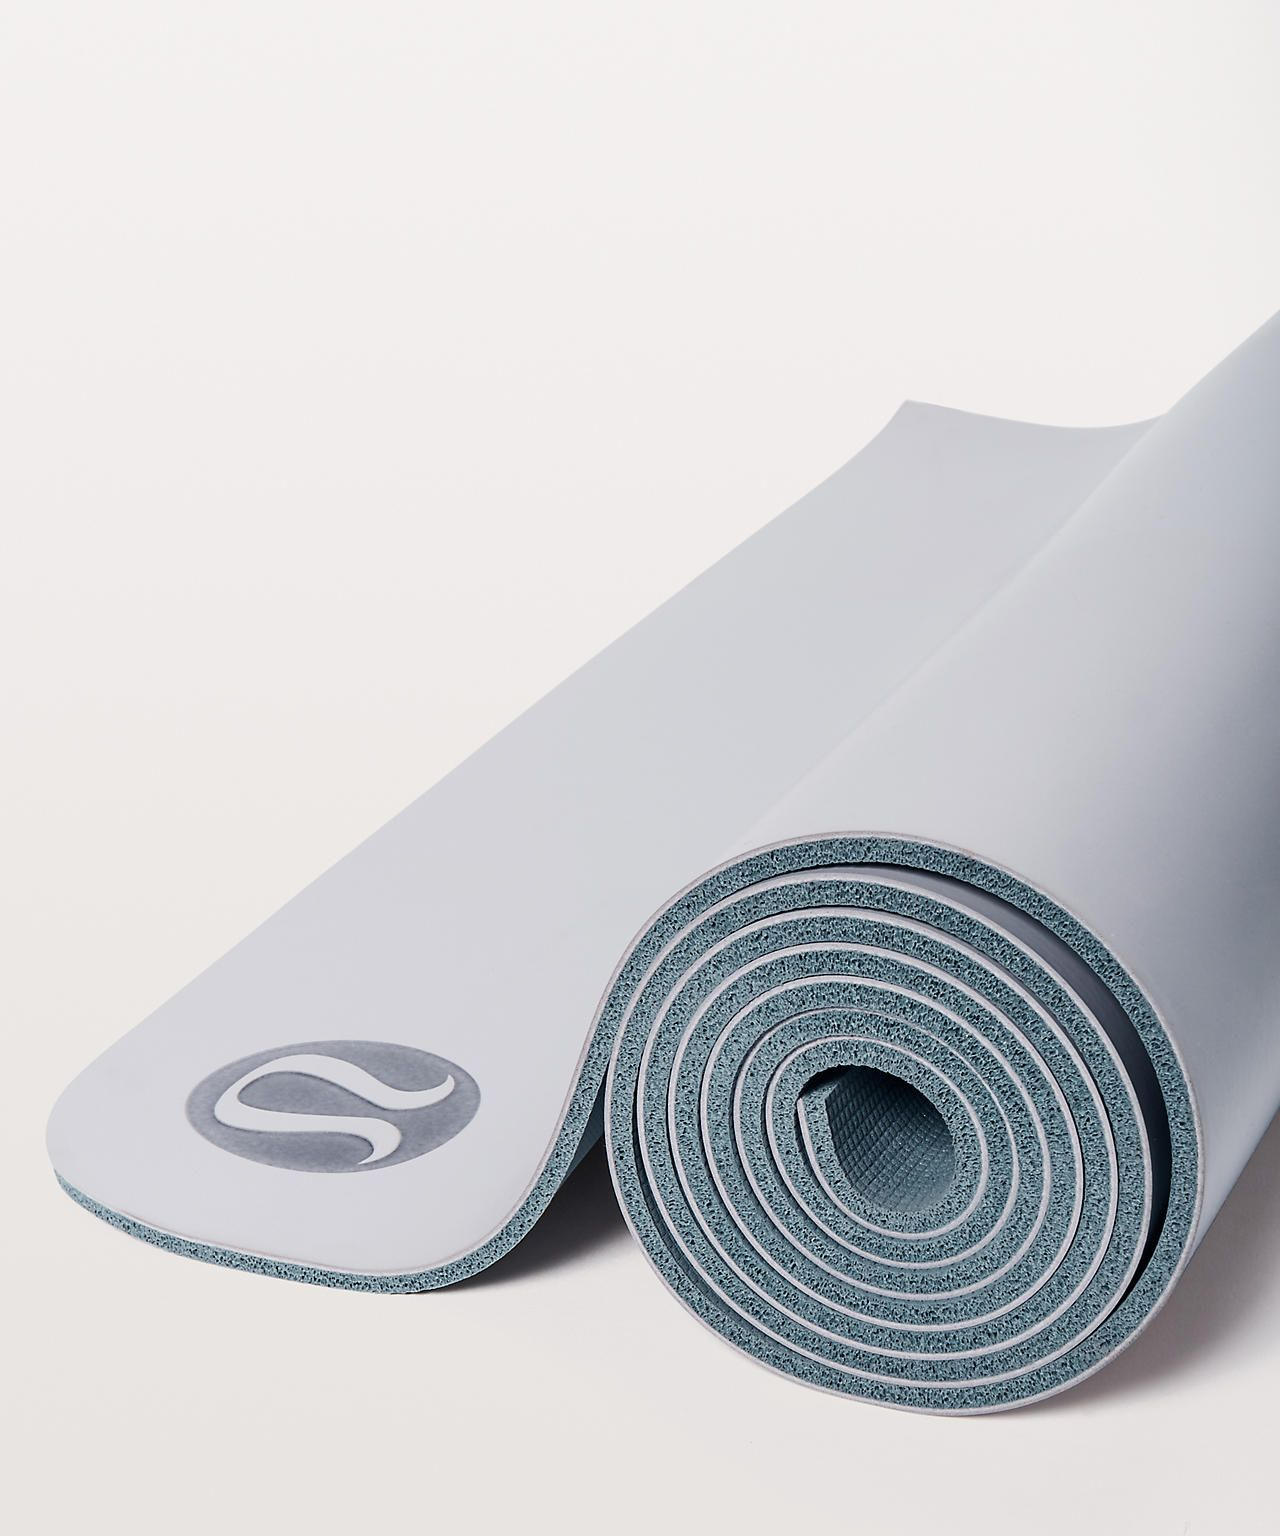 The Reversible Mat 5mm Women S Yoga Mats Lululemon Yoga Women Yoga Mat Yoga Mats Best